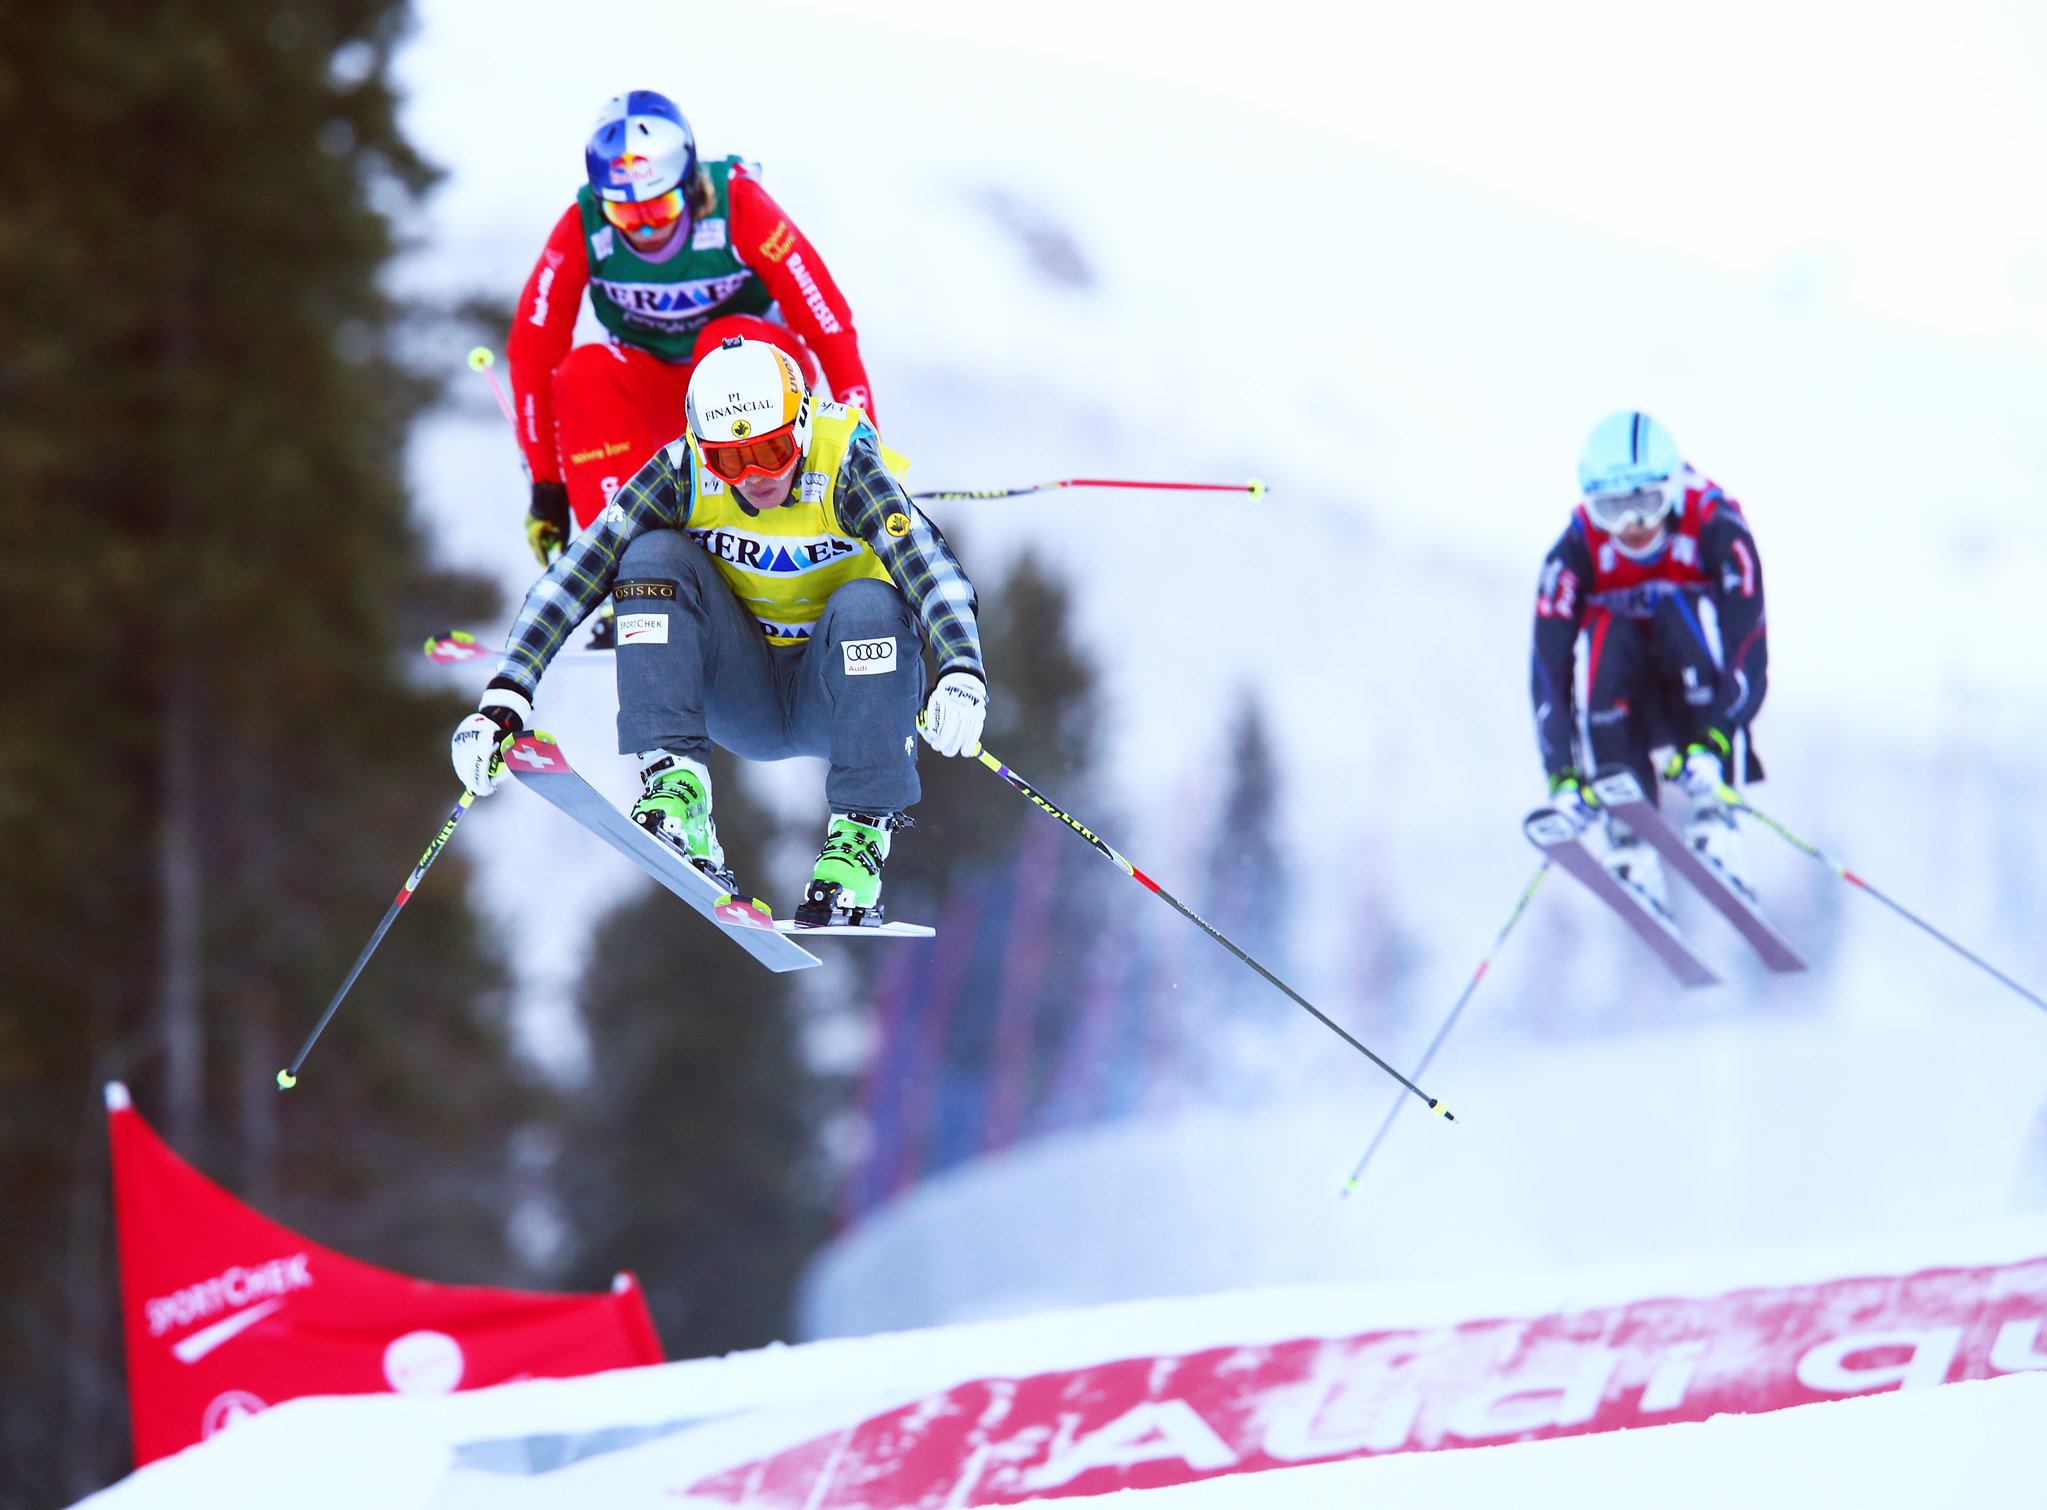 Marielle Thompson leads the way enroute to a 1st place finish in Nakiska, CAN at the FIS Ski Cross World Cup